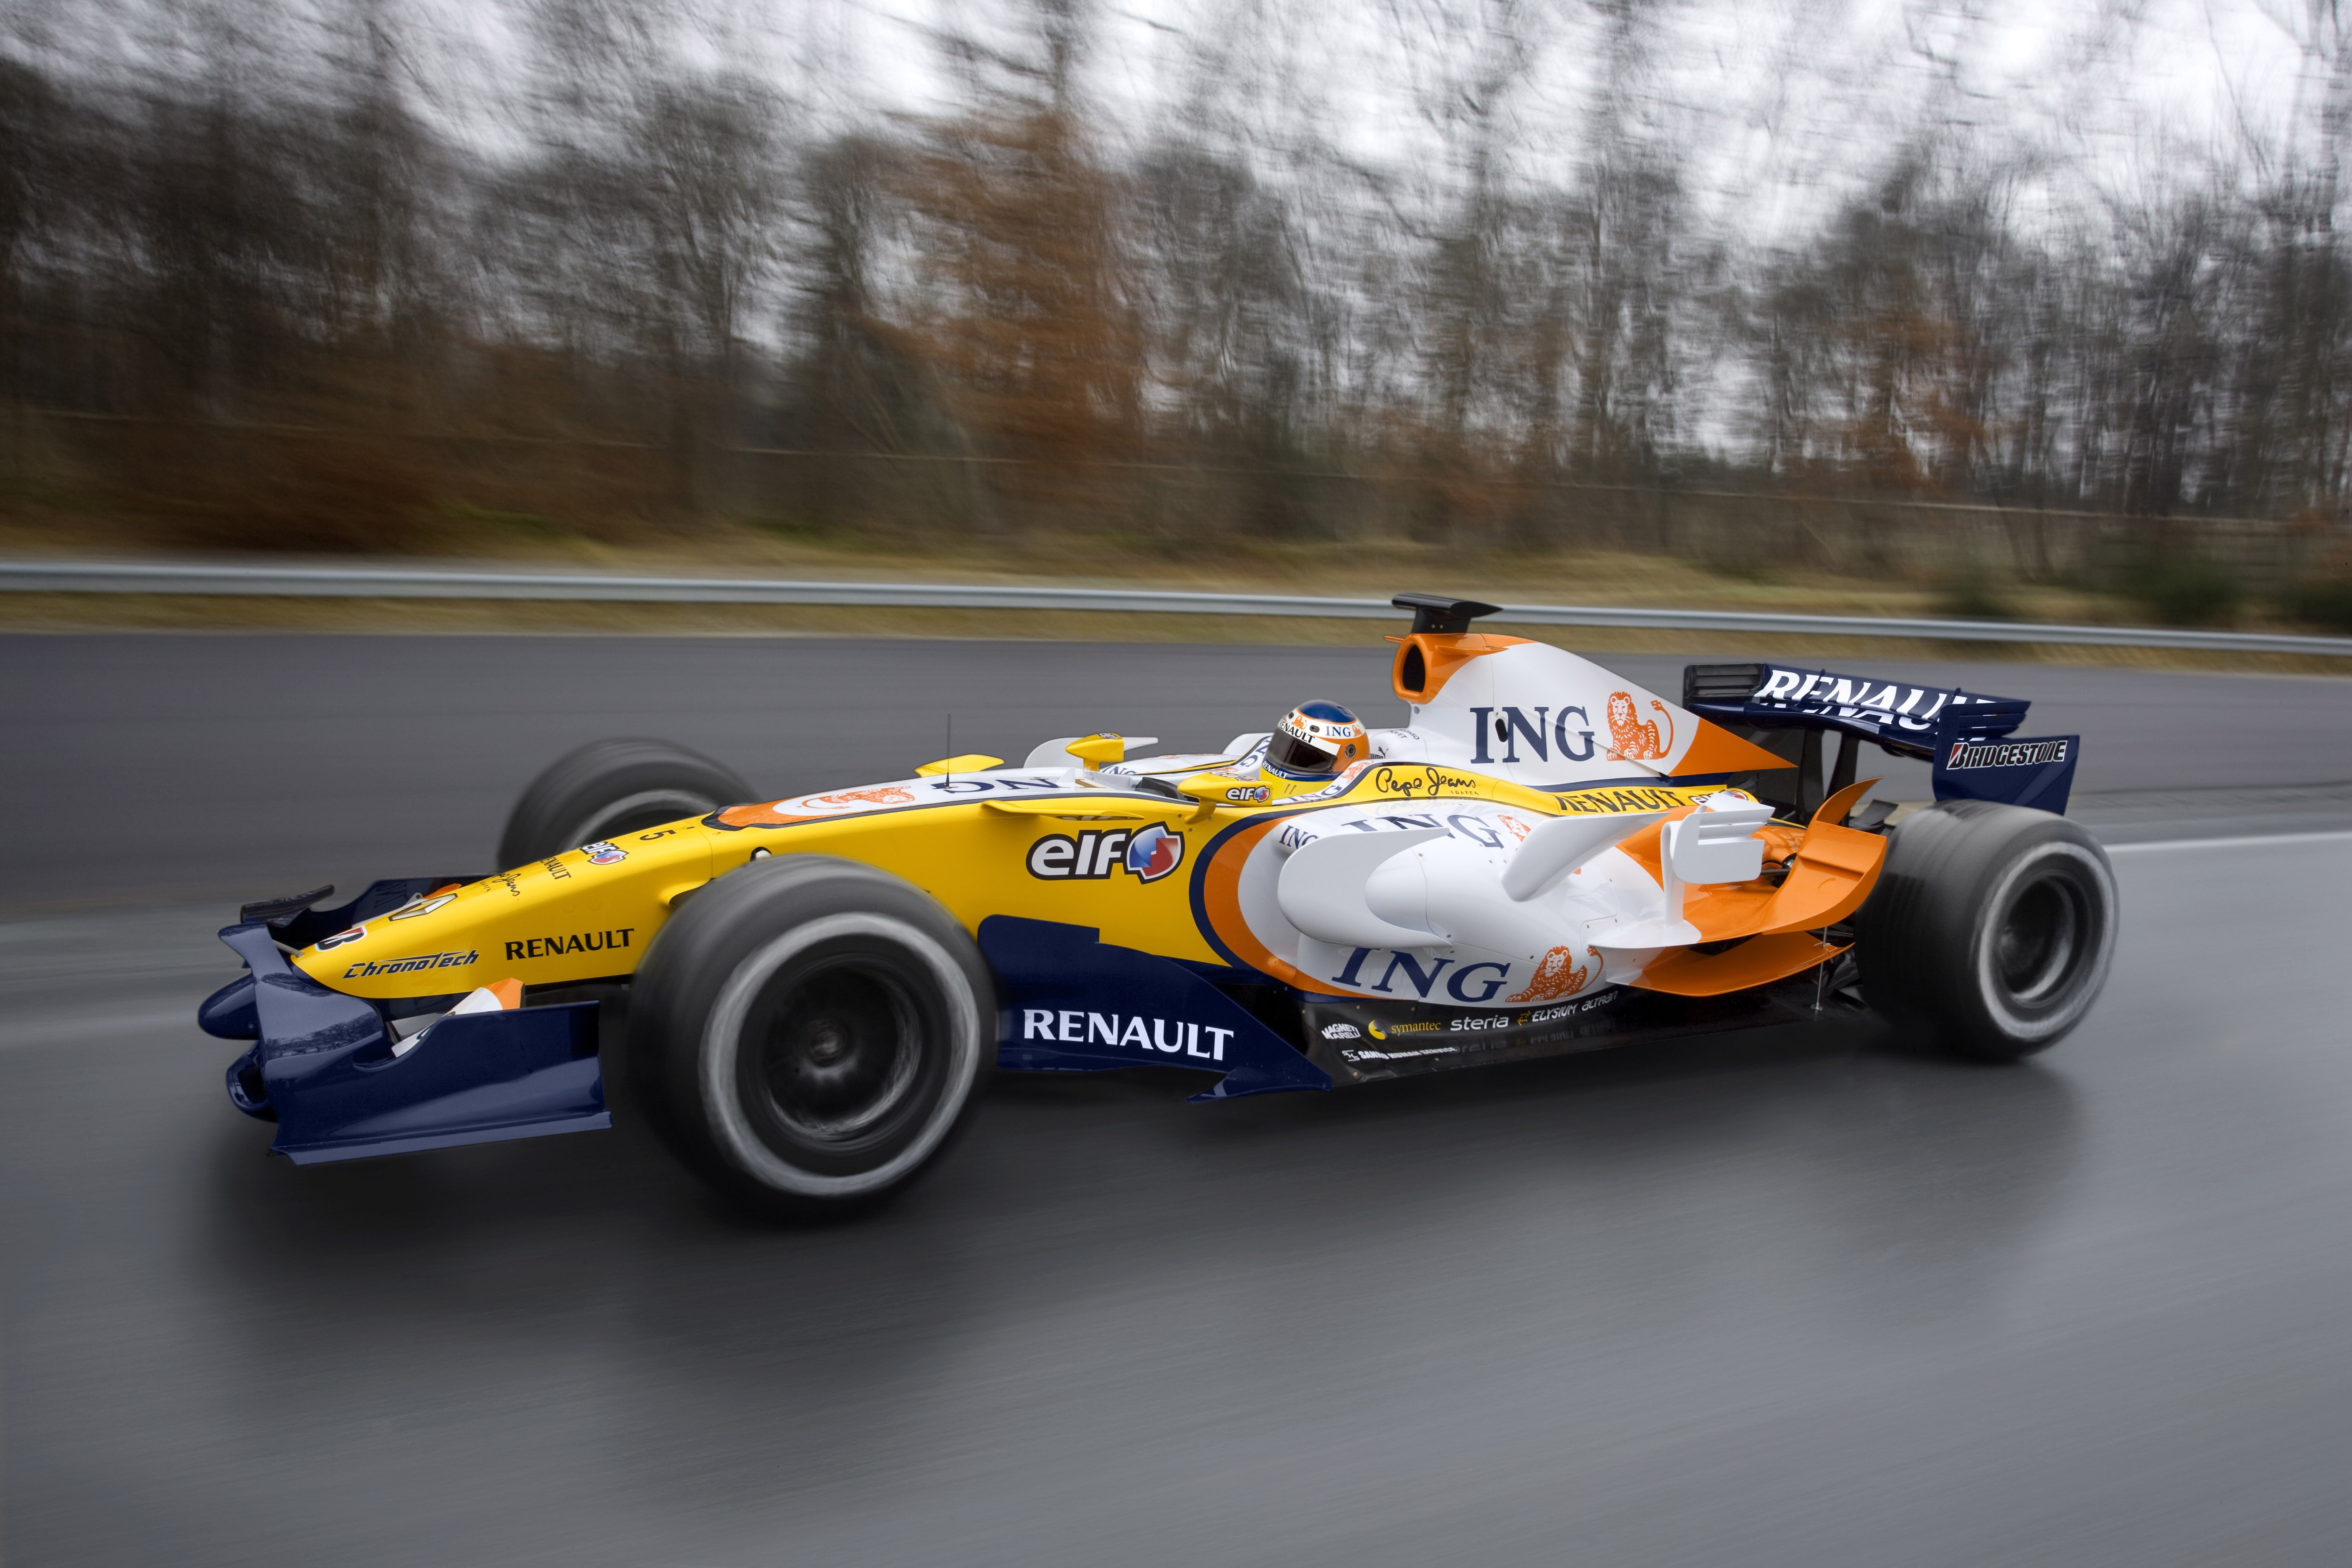 Renault r28 photo - 2